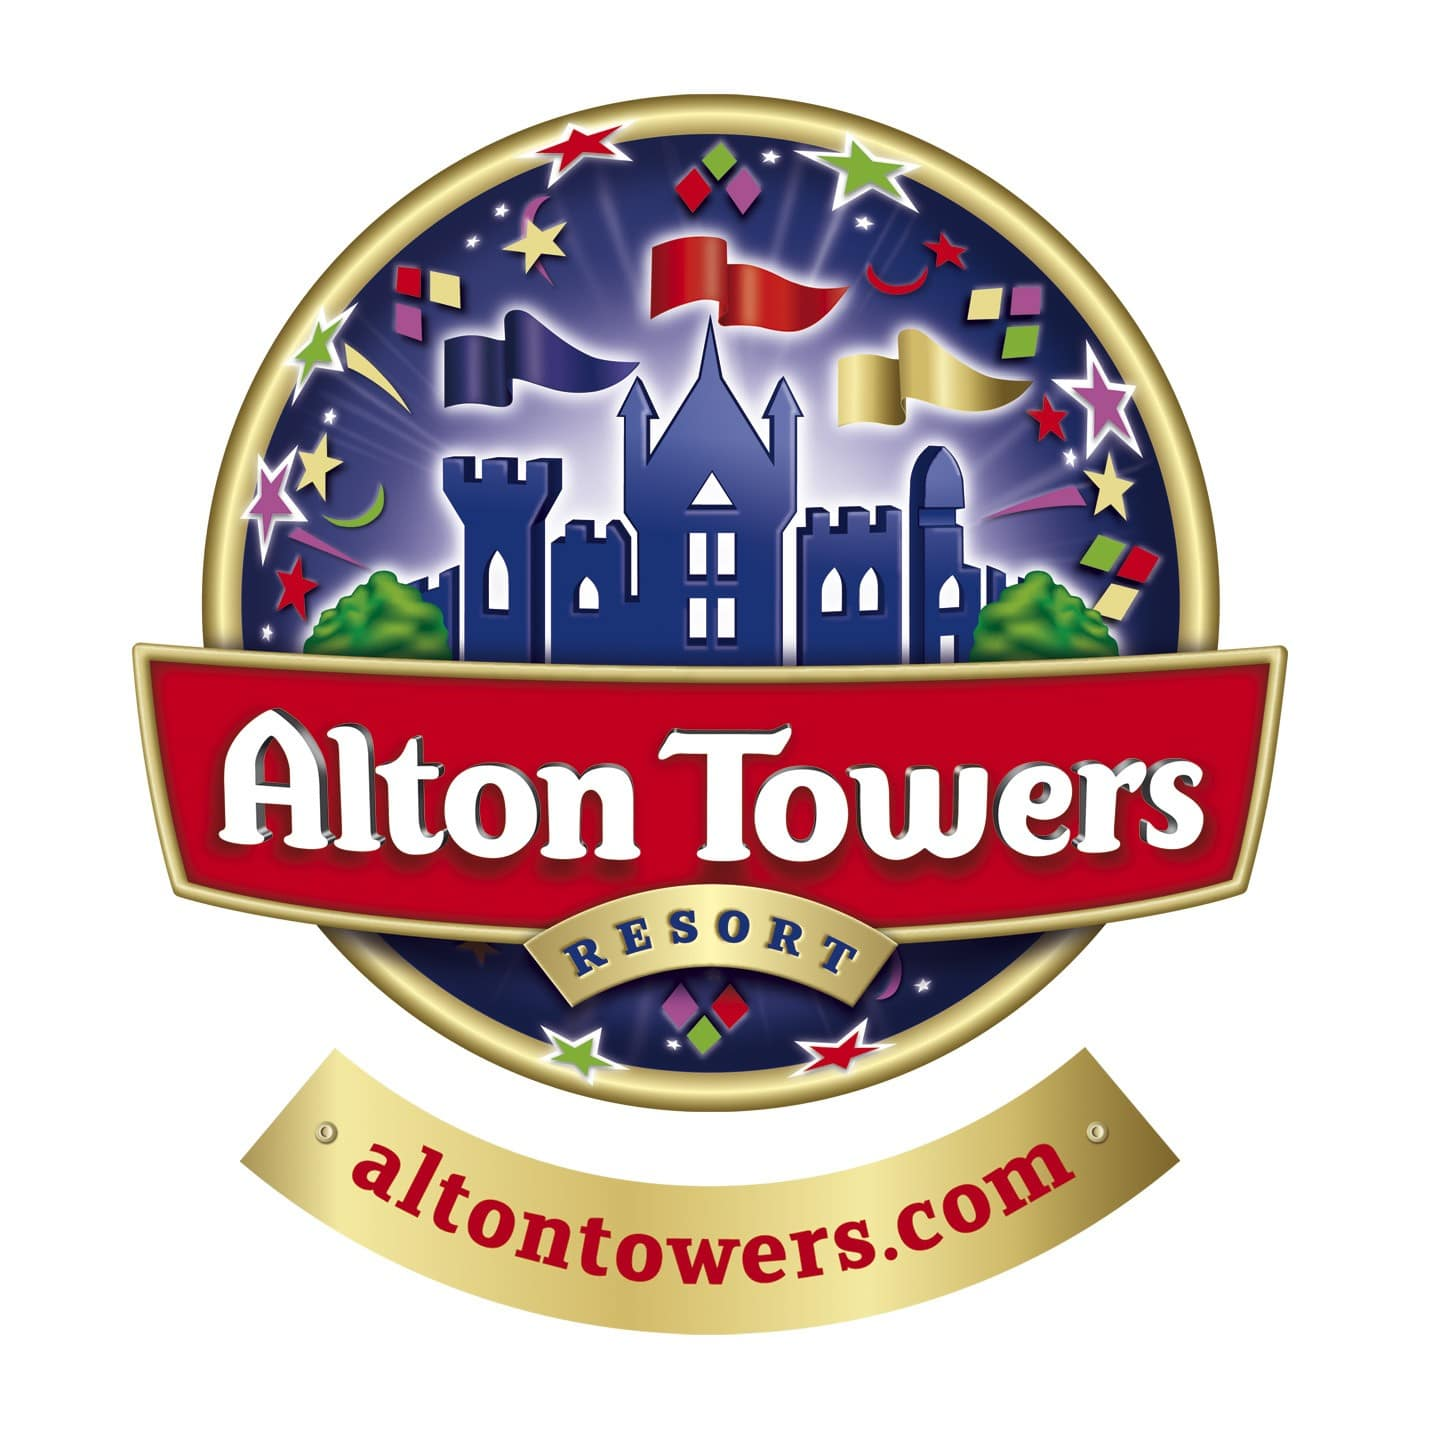 Alton Towers logo lost and found